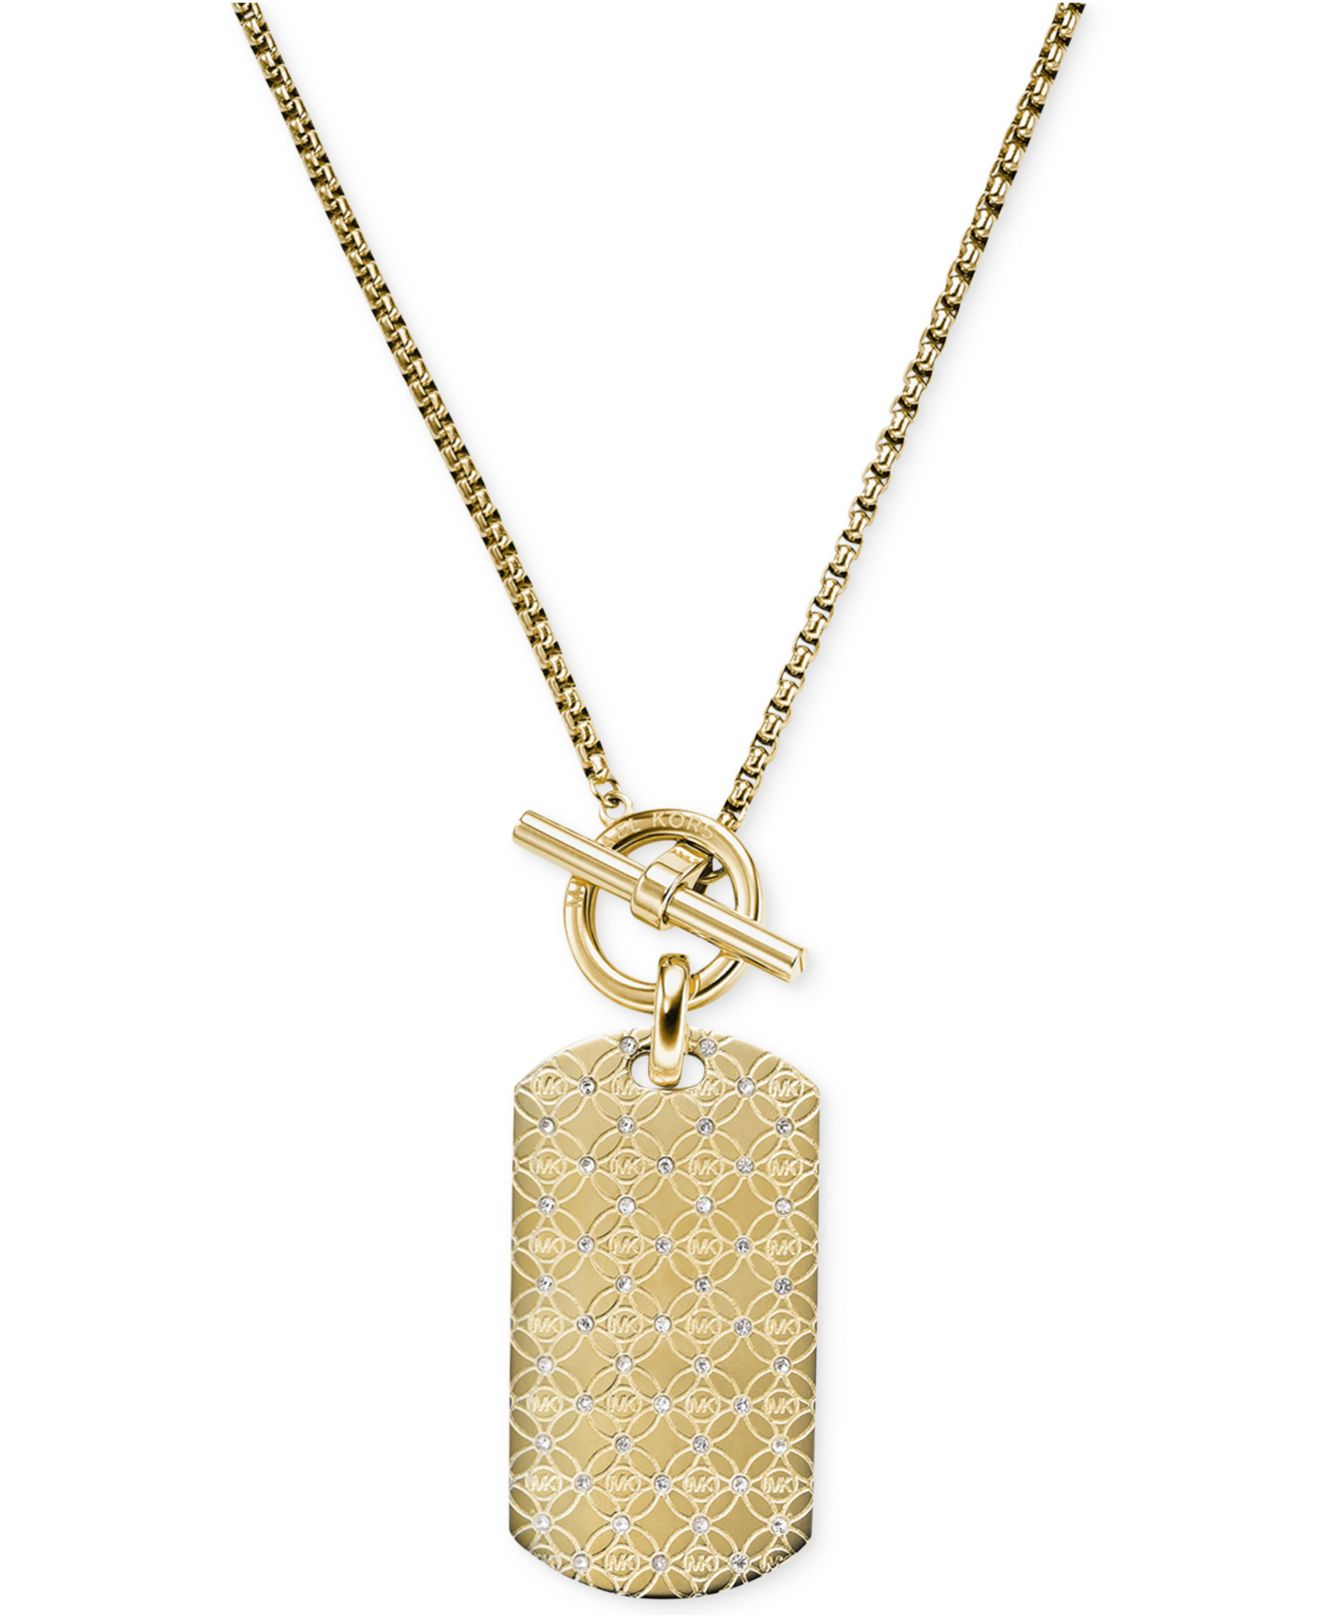 Lyst michael kors logo dog tag pendant necklace in metallic gallery aloadofball Choice Image